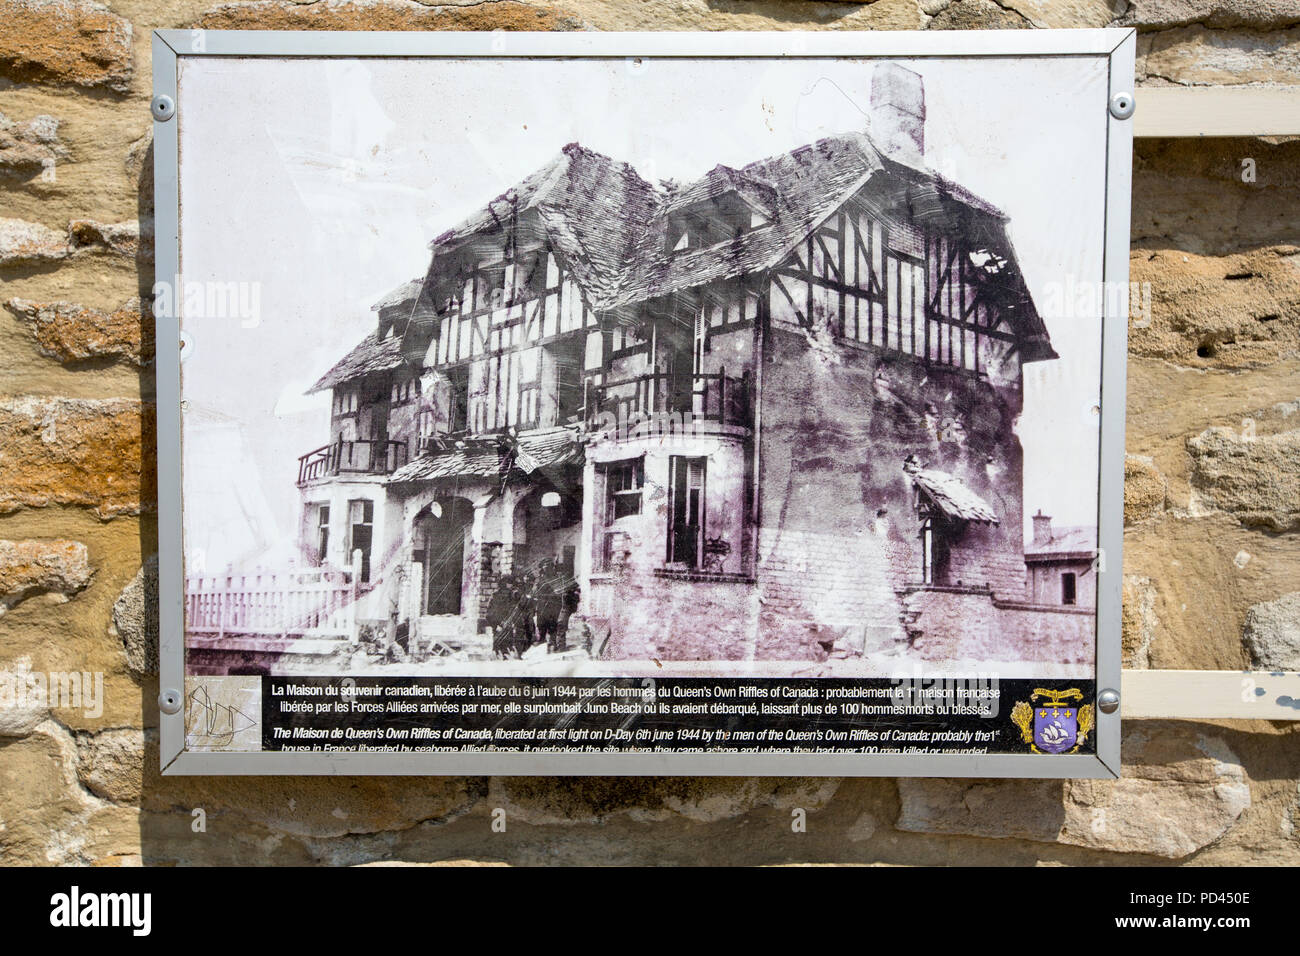 A Photograph Of The Canada House Probably The First House To Be Liberated From D Day On Juno Beach Bernieres Sur Mer Normandy France Stock Photo Alamy